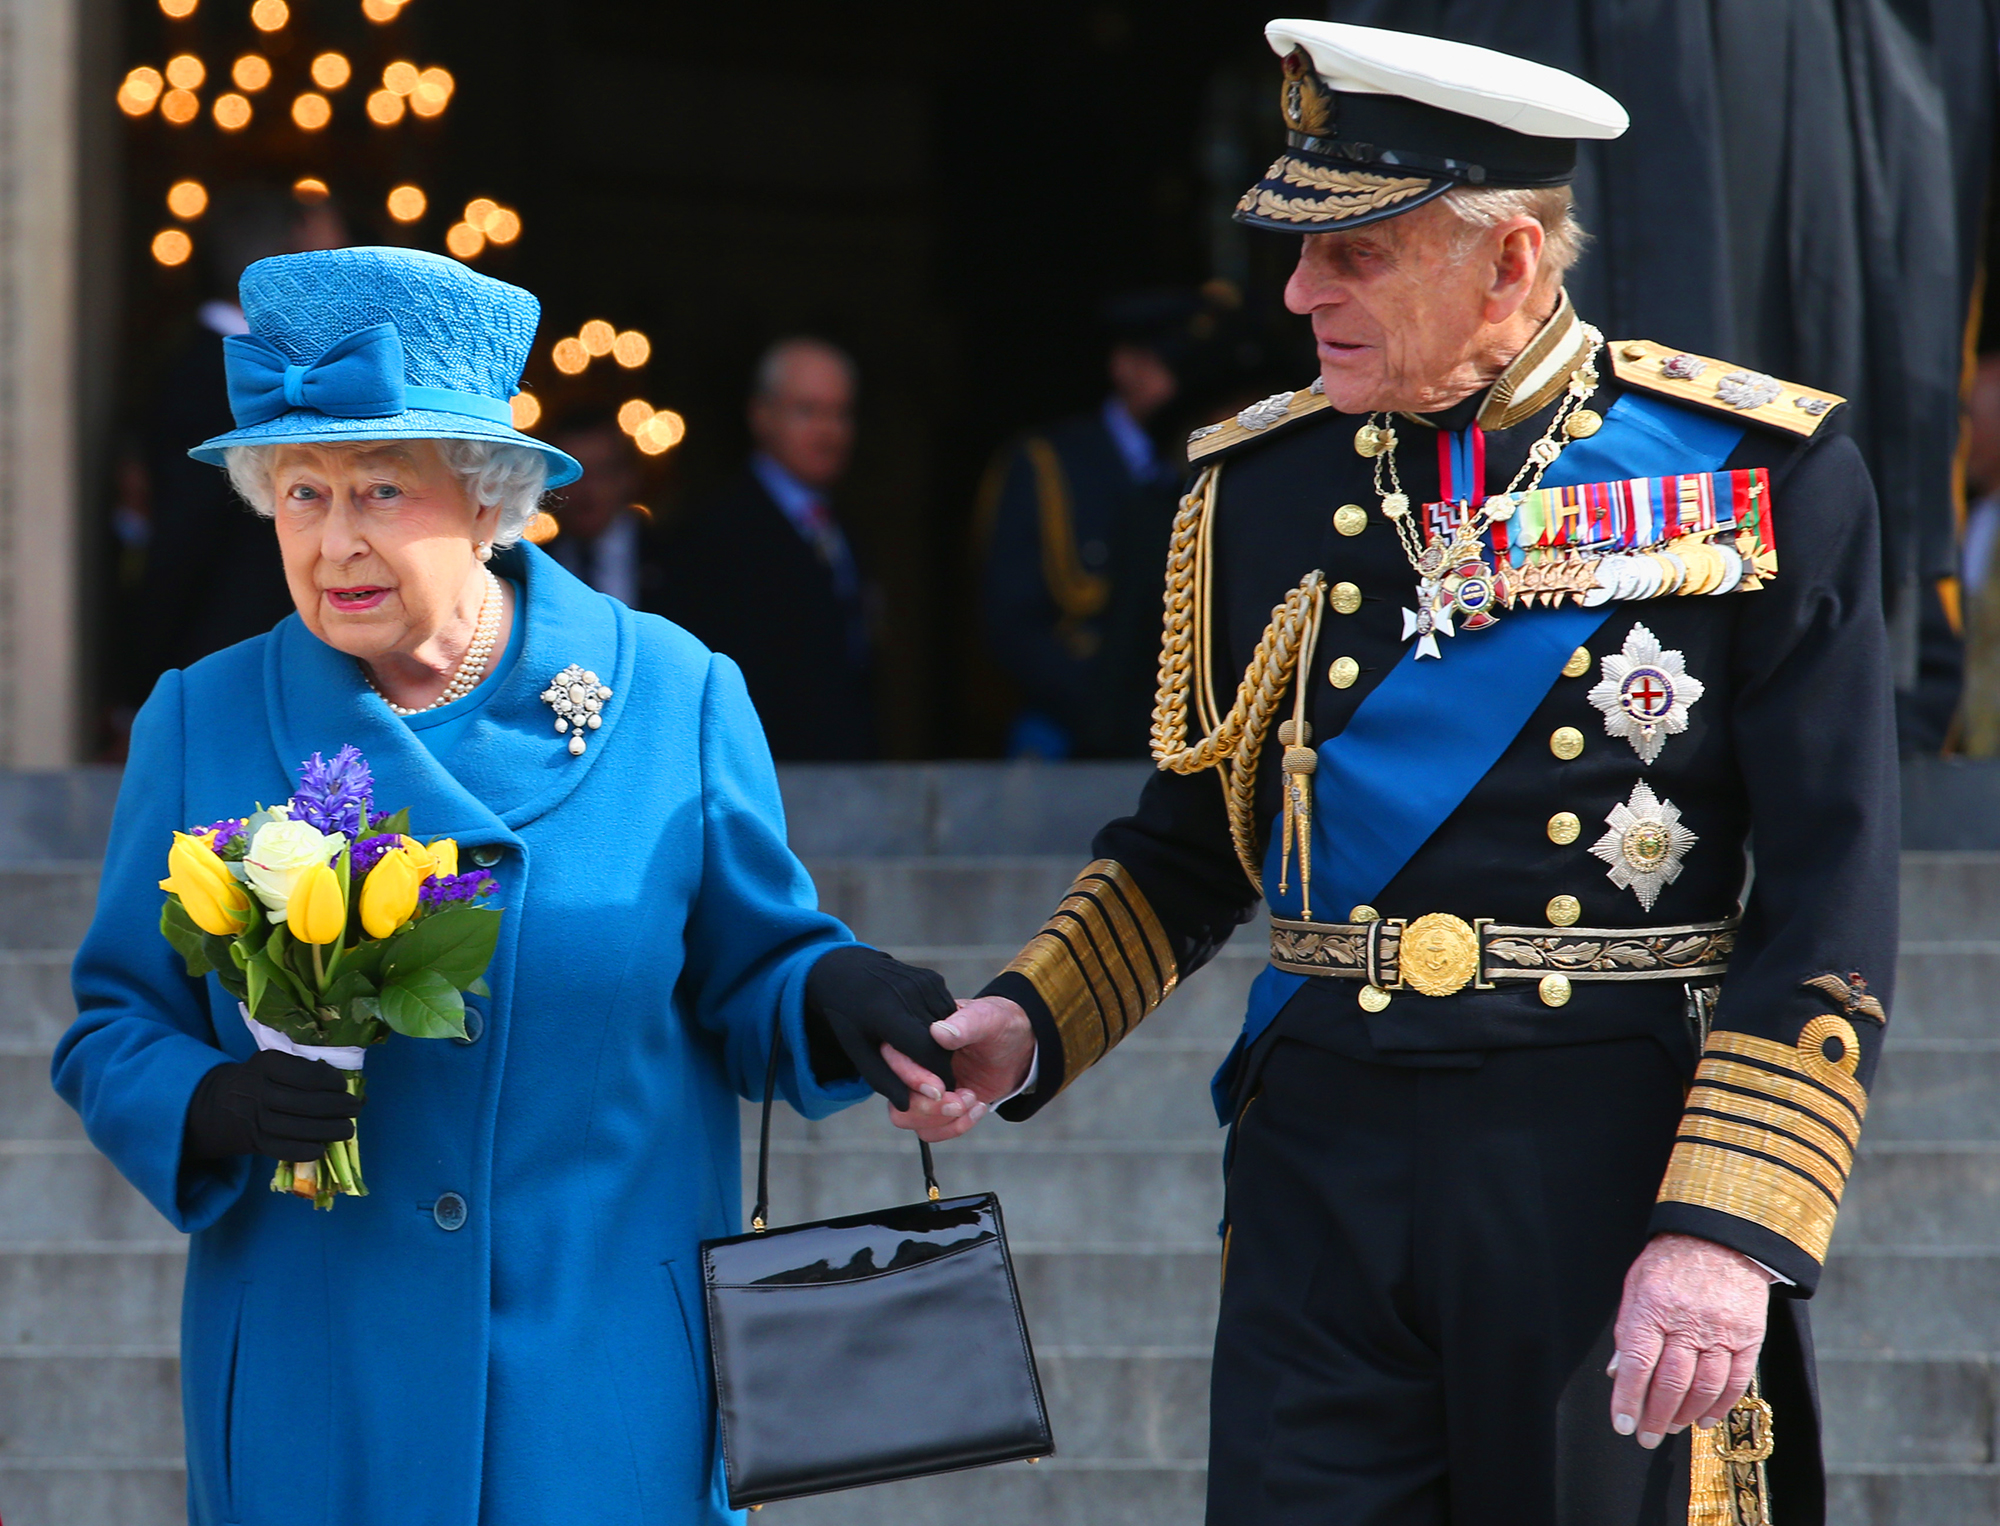 """Royal Family Nicknames - Prince Philip lovingly calls his wife, Queen Elizabeth, """"Cabbage"""" for unknown reasons. Royal biographer Robert Lacey confirmed the nickname to The Sunday Times in 2006: """"Yes, I've heard that is how he will sometimes refer to her."""""""